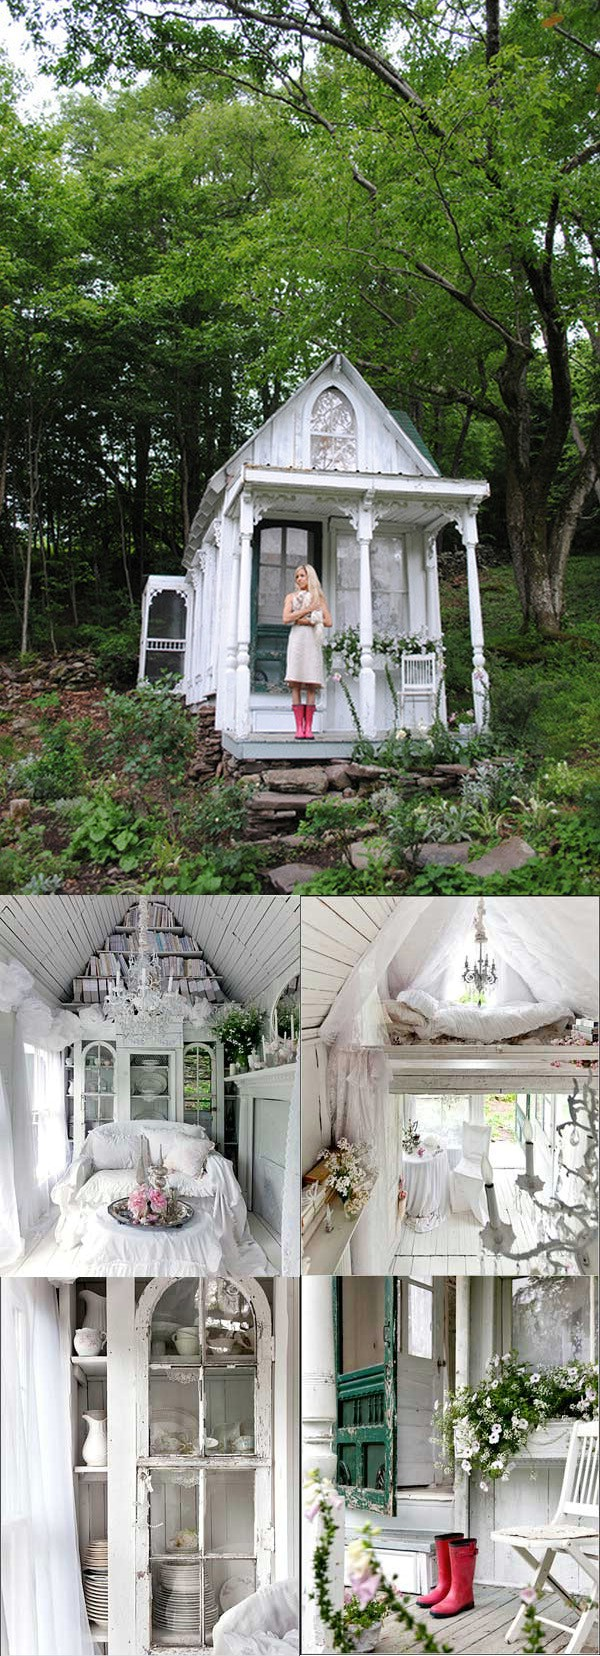 Potter's Paradise - Top 80 Gorgeously Comfortable She Sheds and Backyard Tiny Houses